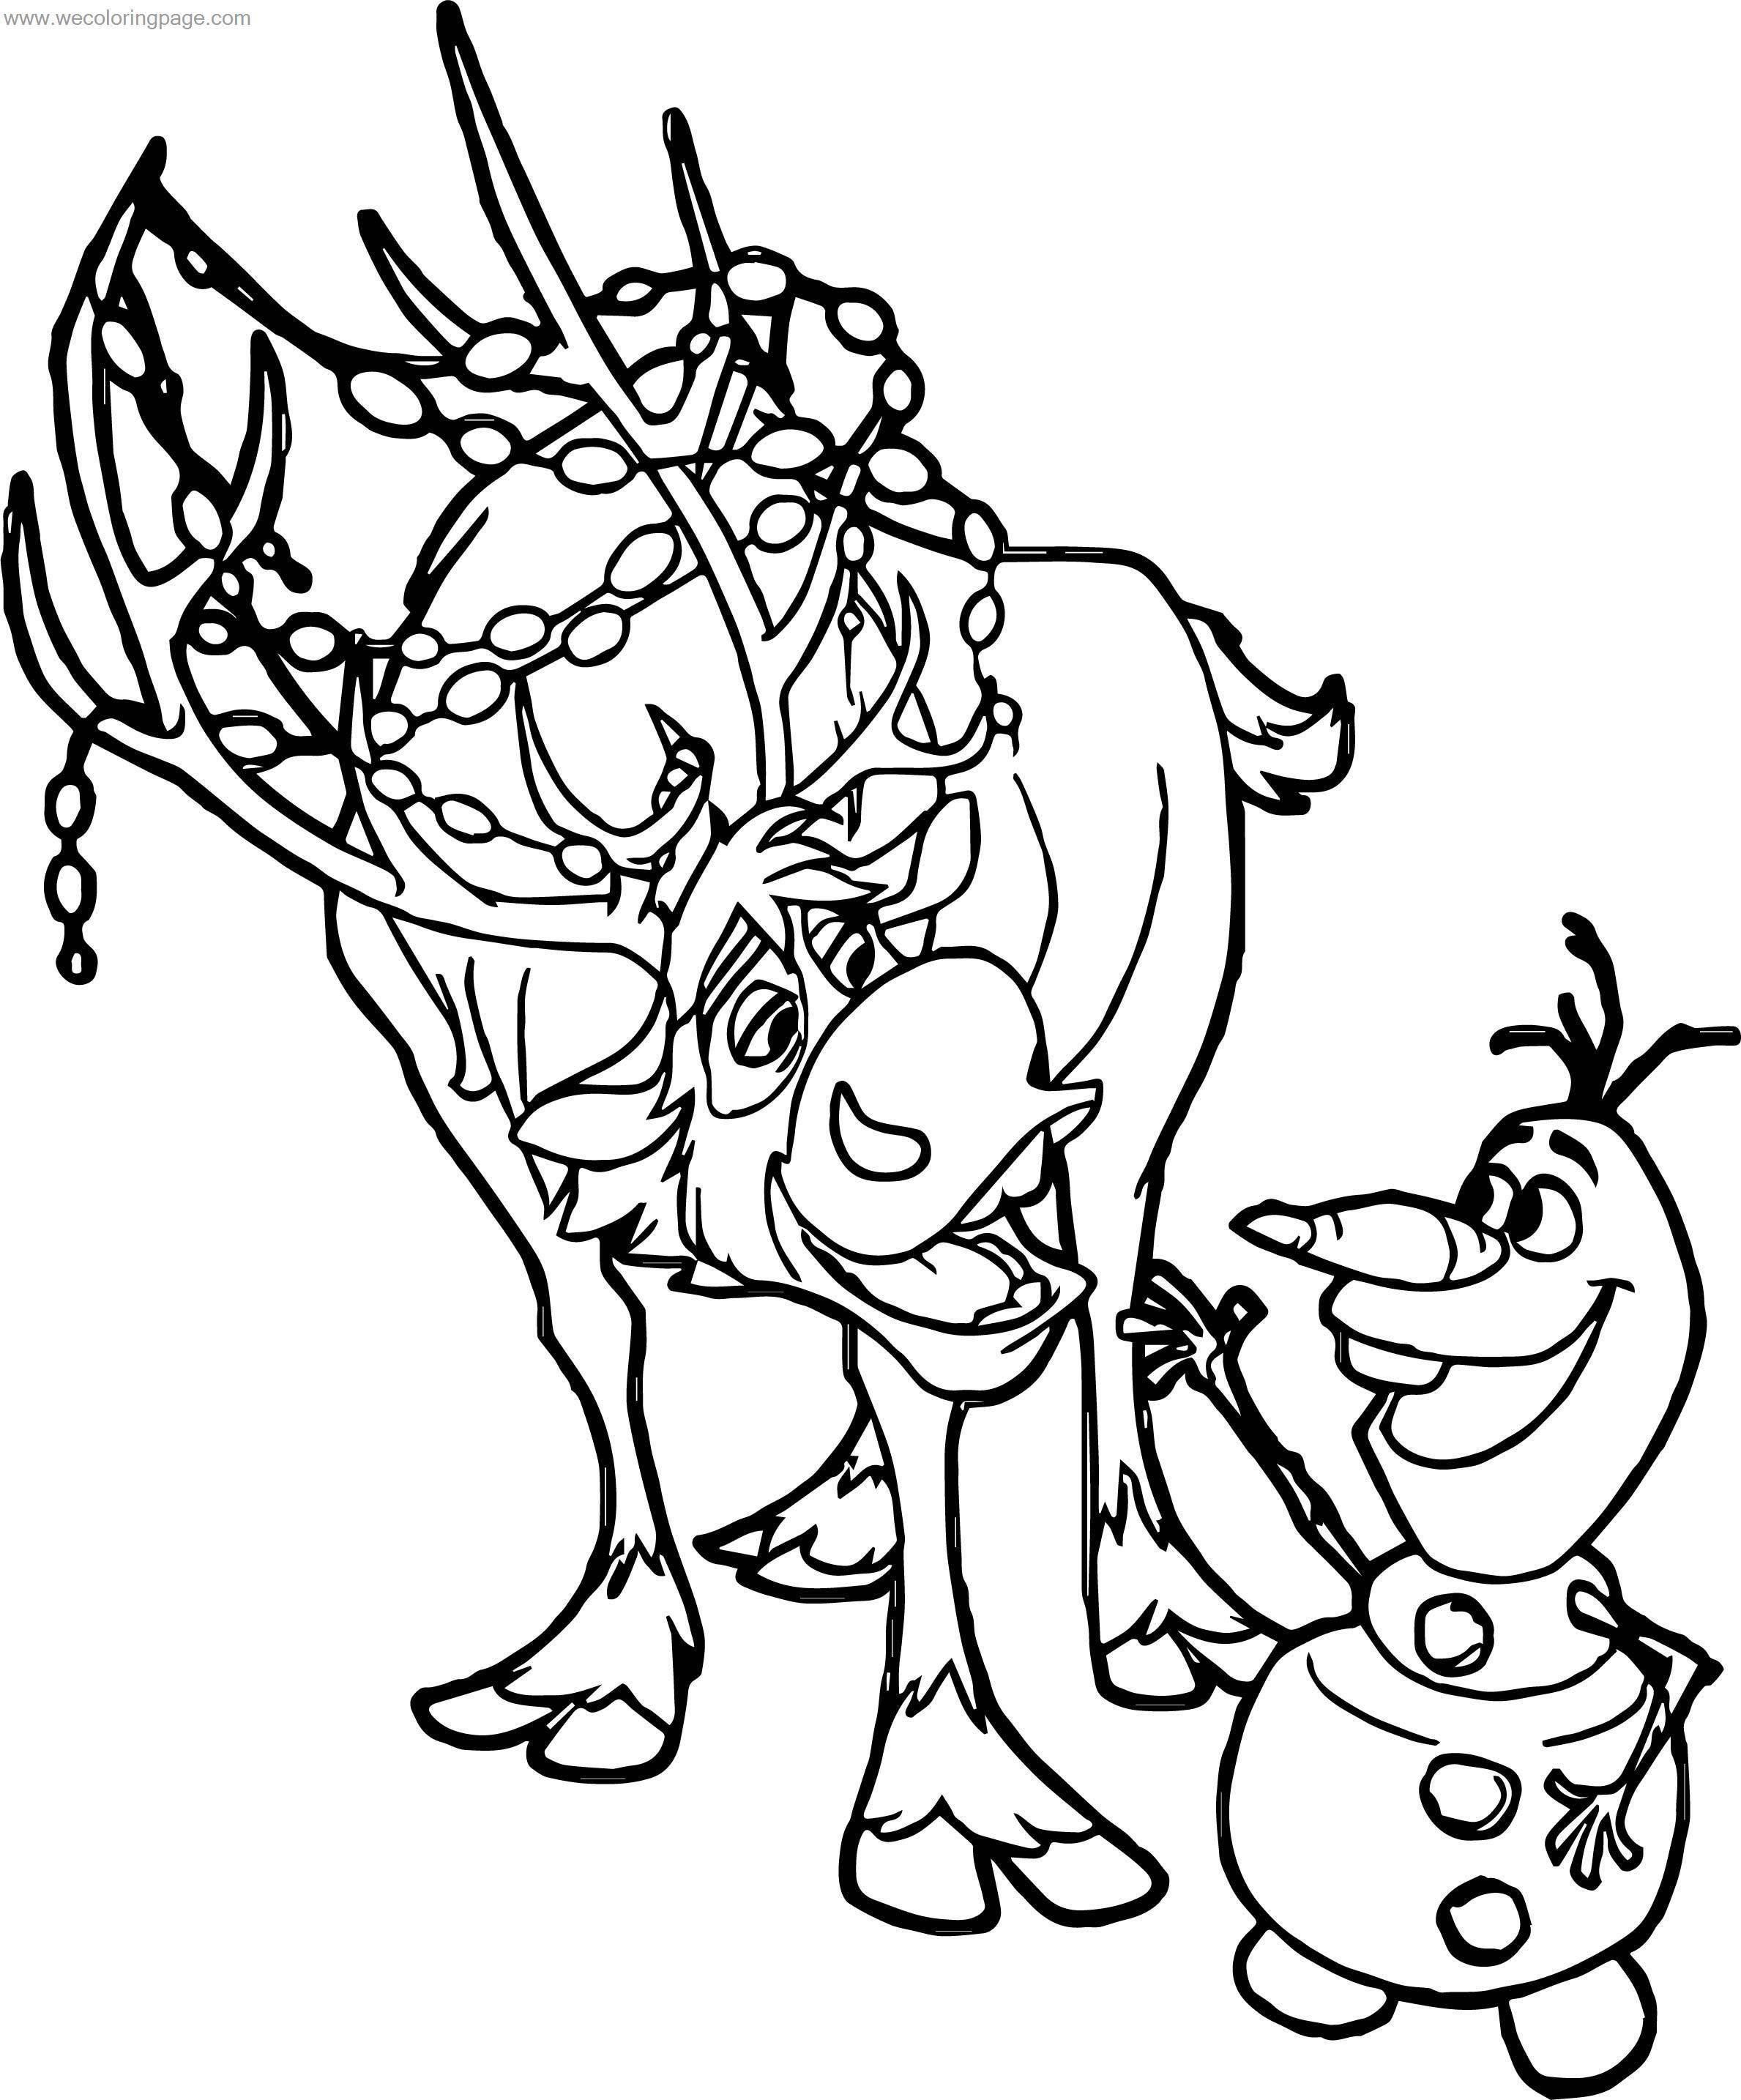 Frozen Sven And Olaf Coloring Pages Coloring Books Gifts Coloring Pages Mandala Coloring Books